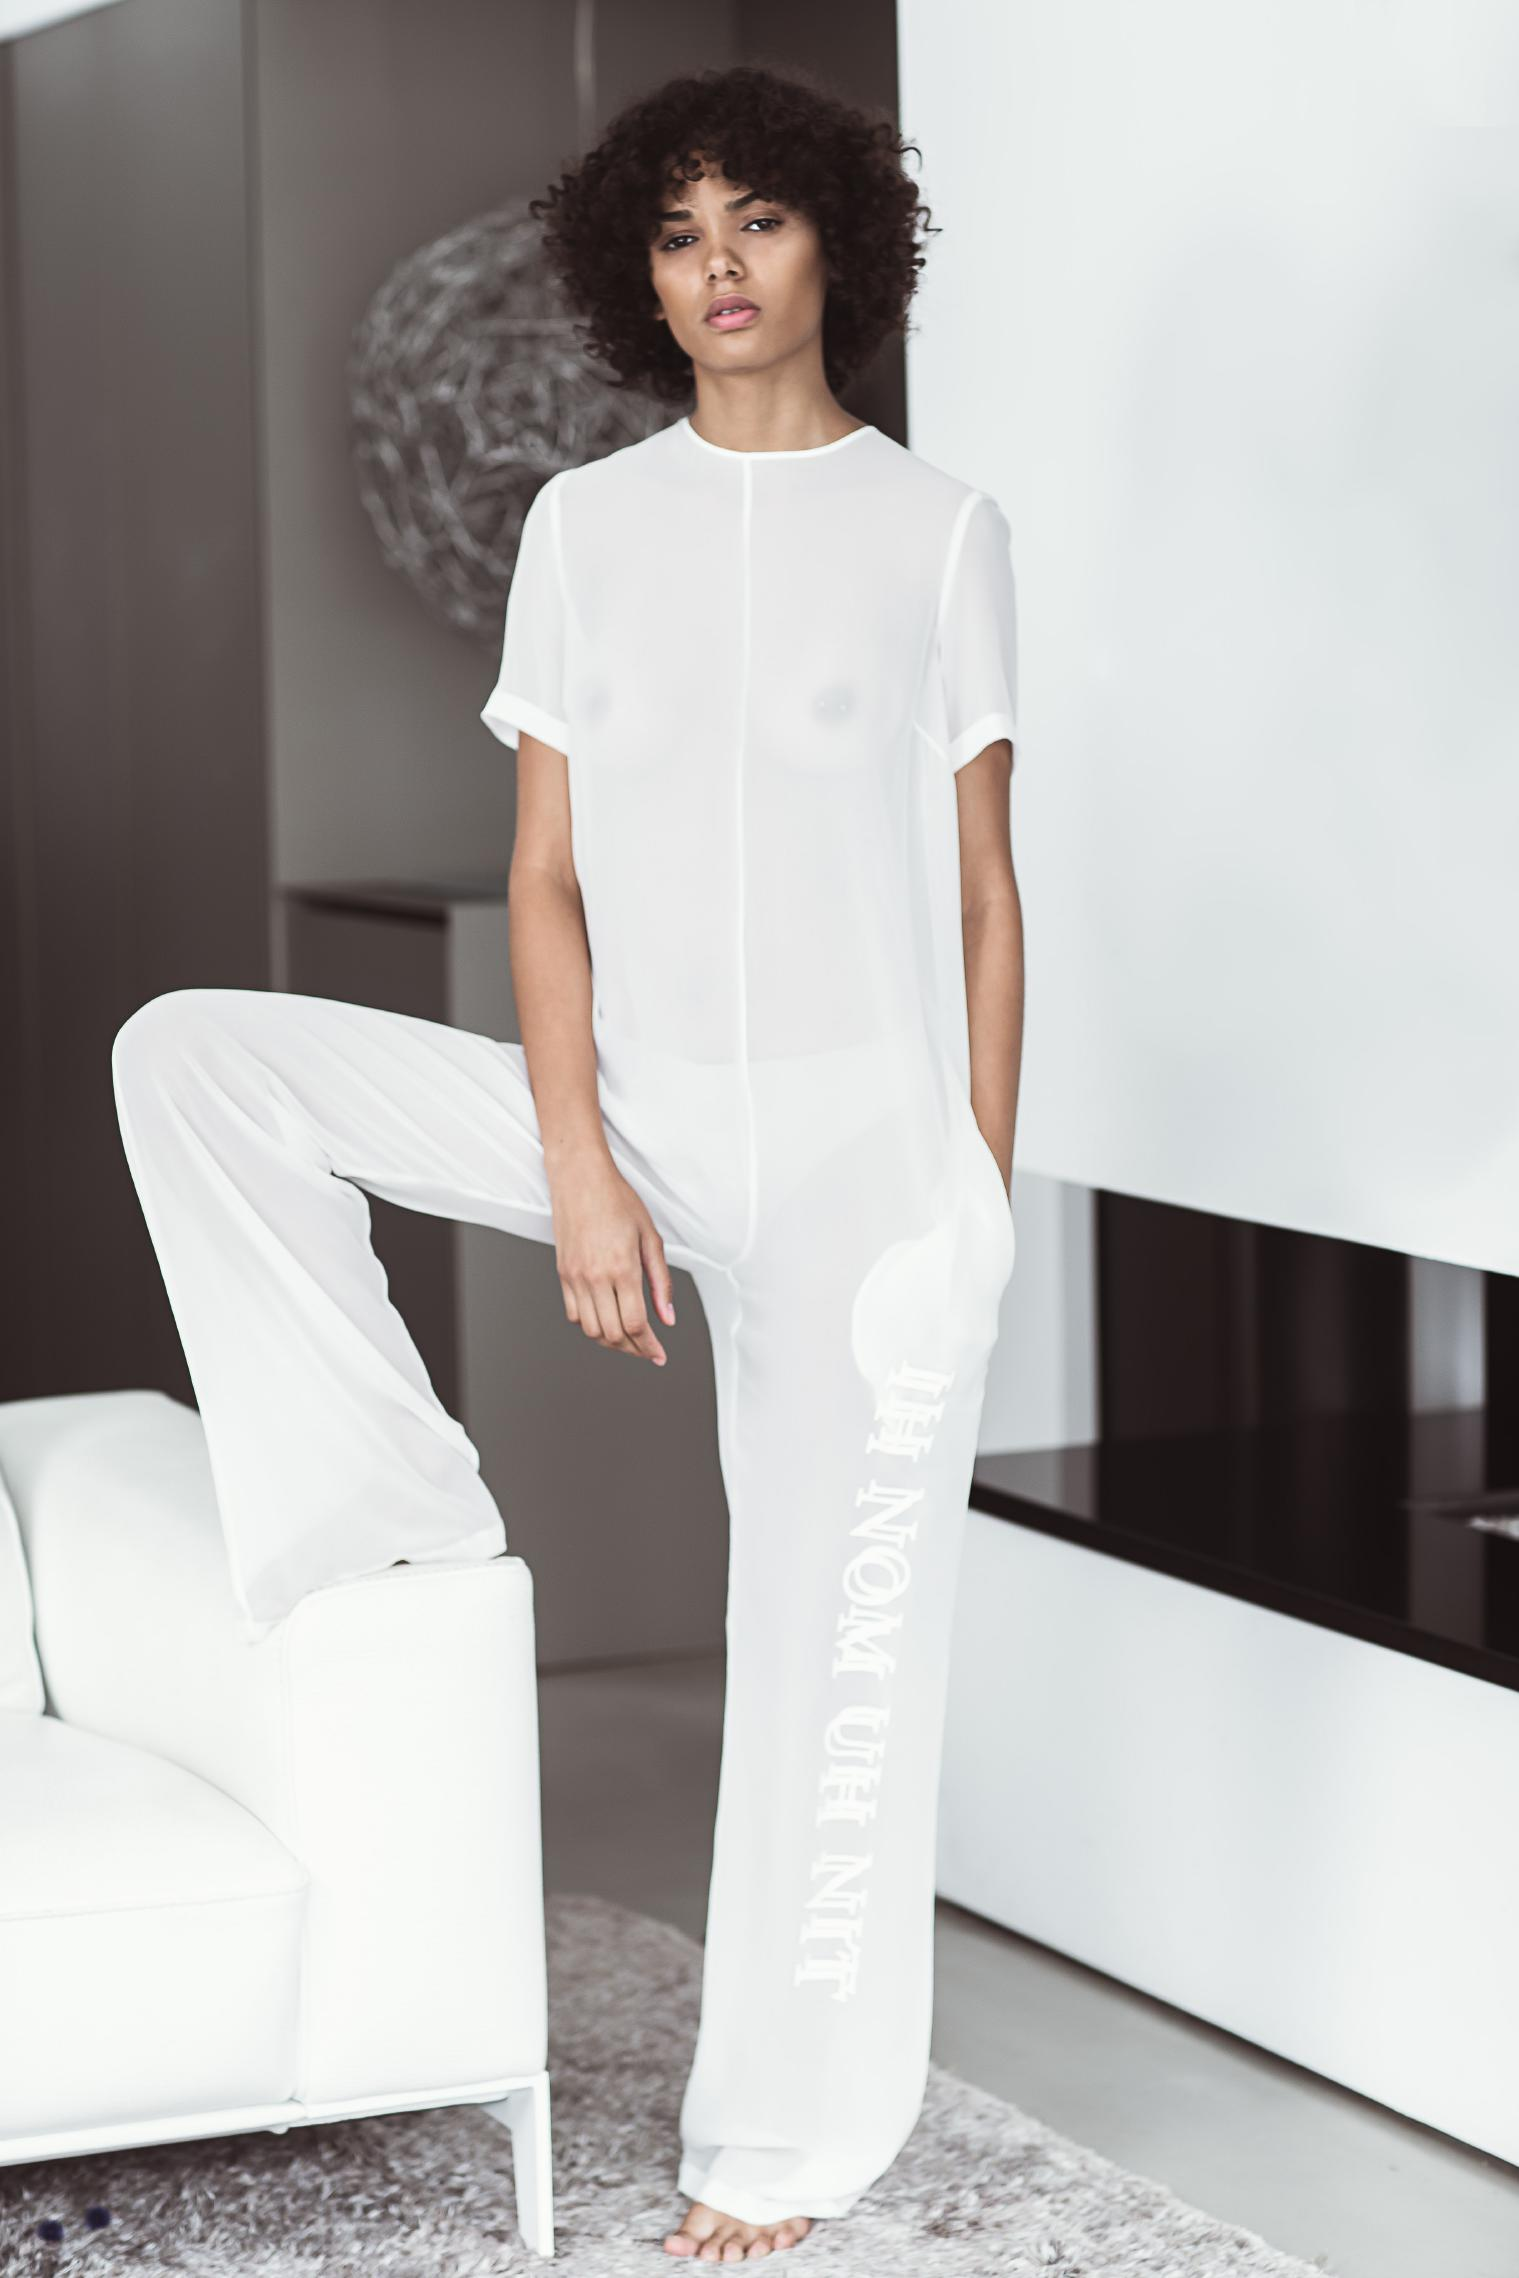 SS19 WOMAN LOOK BOOK-2_Page_17_Image_0001.jpg